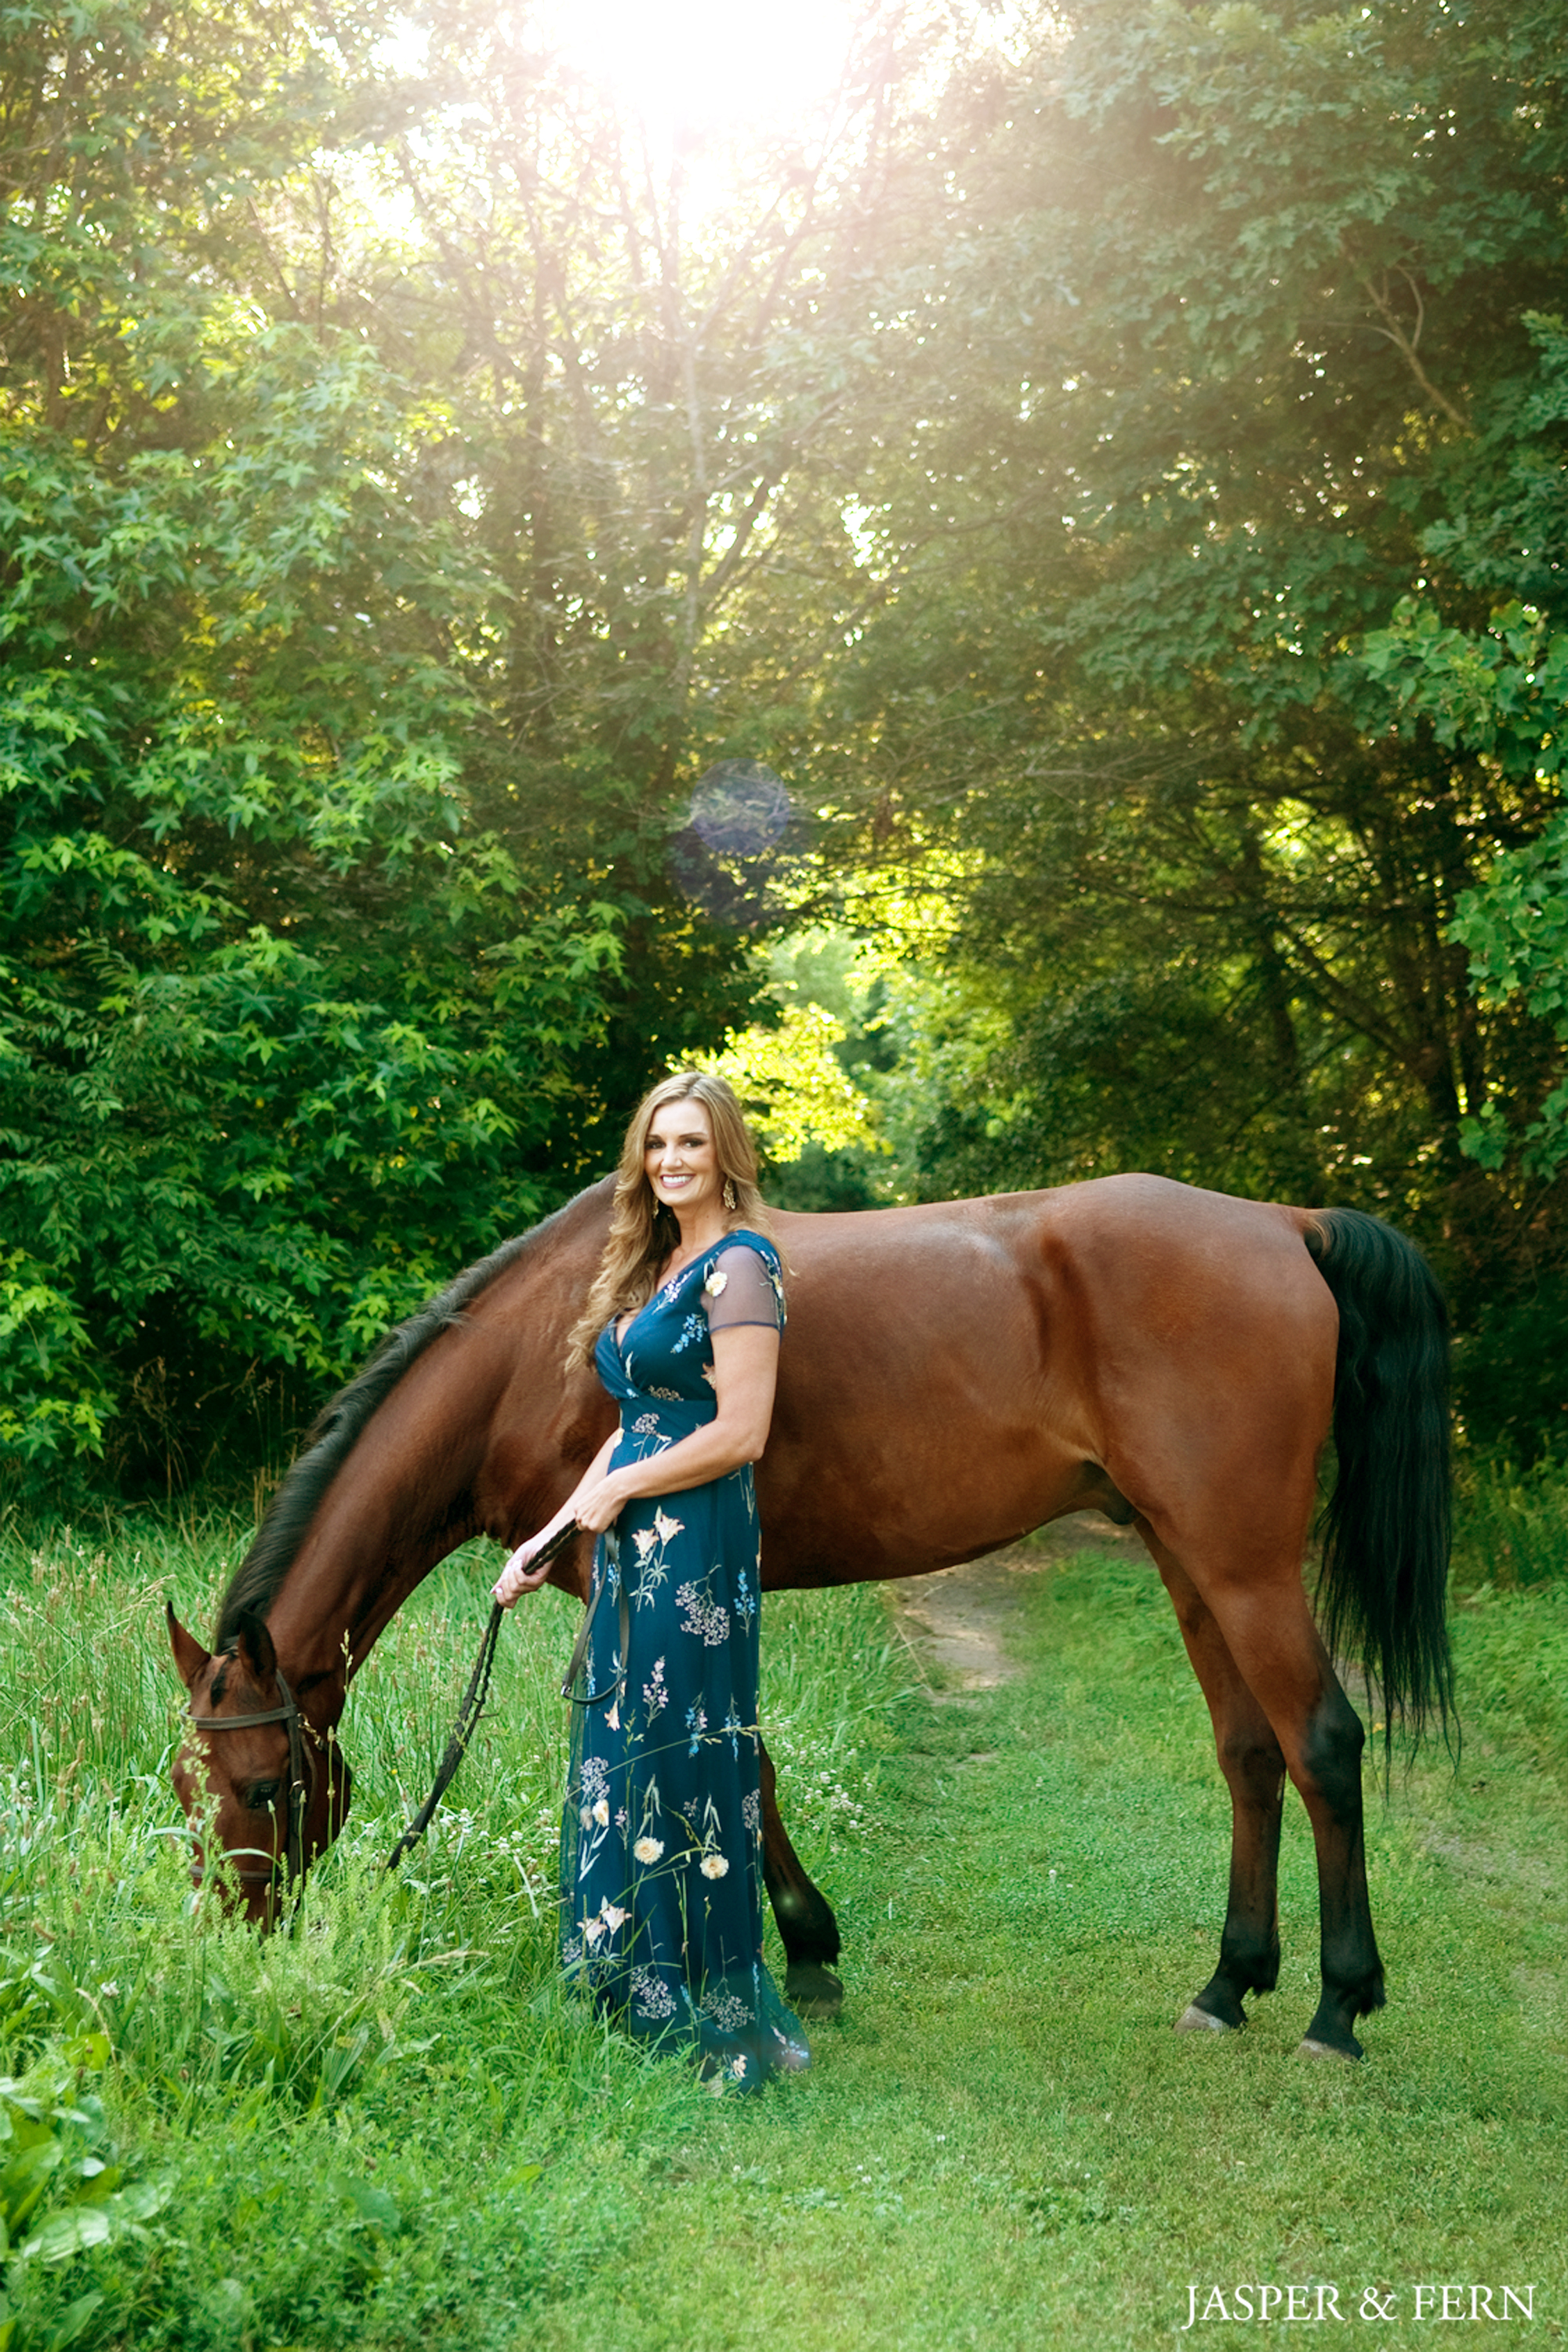 Pictures with horses | Women on horses | Women's Portraits | Farm photographs | horse photographs | True Heart Farm | Bermuda Run | Winston Salem | North Carolina | Portrait Photographer | Sunset Portraits | Equine Photography | Women's Photography | outdoor portraits | Glamour Photographs | outdoor photography | beautiful women | beautiful horses | country life | country living | brown horse | blue dress with flowers | Glamour curls | summer photographs | Summer days | Jasper and Fern | Jasper & Fern | animal photography | animal portraits | portraits with animals | Greensboro | Equine | Equestrian | Show Horse | cute animal photos | Western North Carolina | nature photography | Nature portraits | Nature pics | pet photograph | pet pictures | pet photographer | wsnc | downtown winston salem | embroidered flowers | blue embroidered summer dress | Target | women's dresses | summer dresses for women